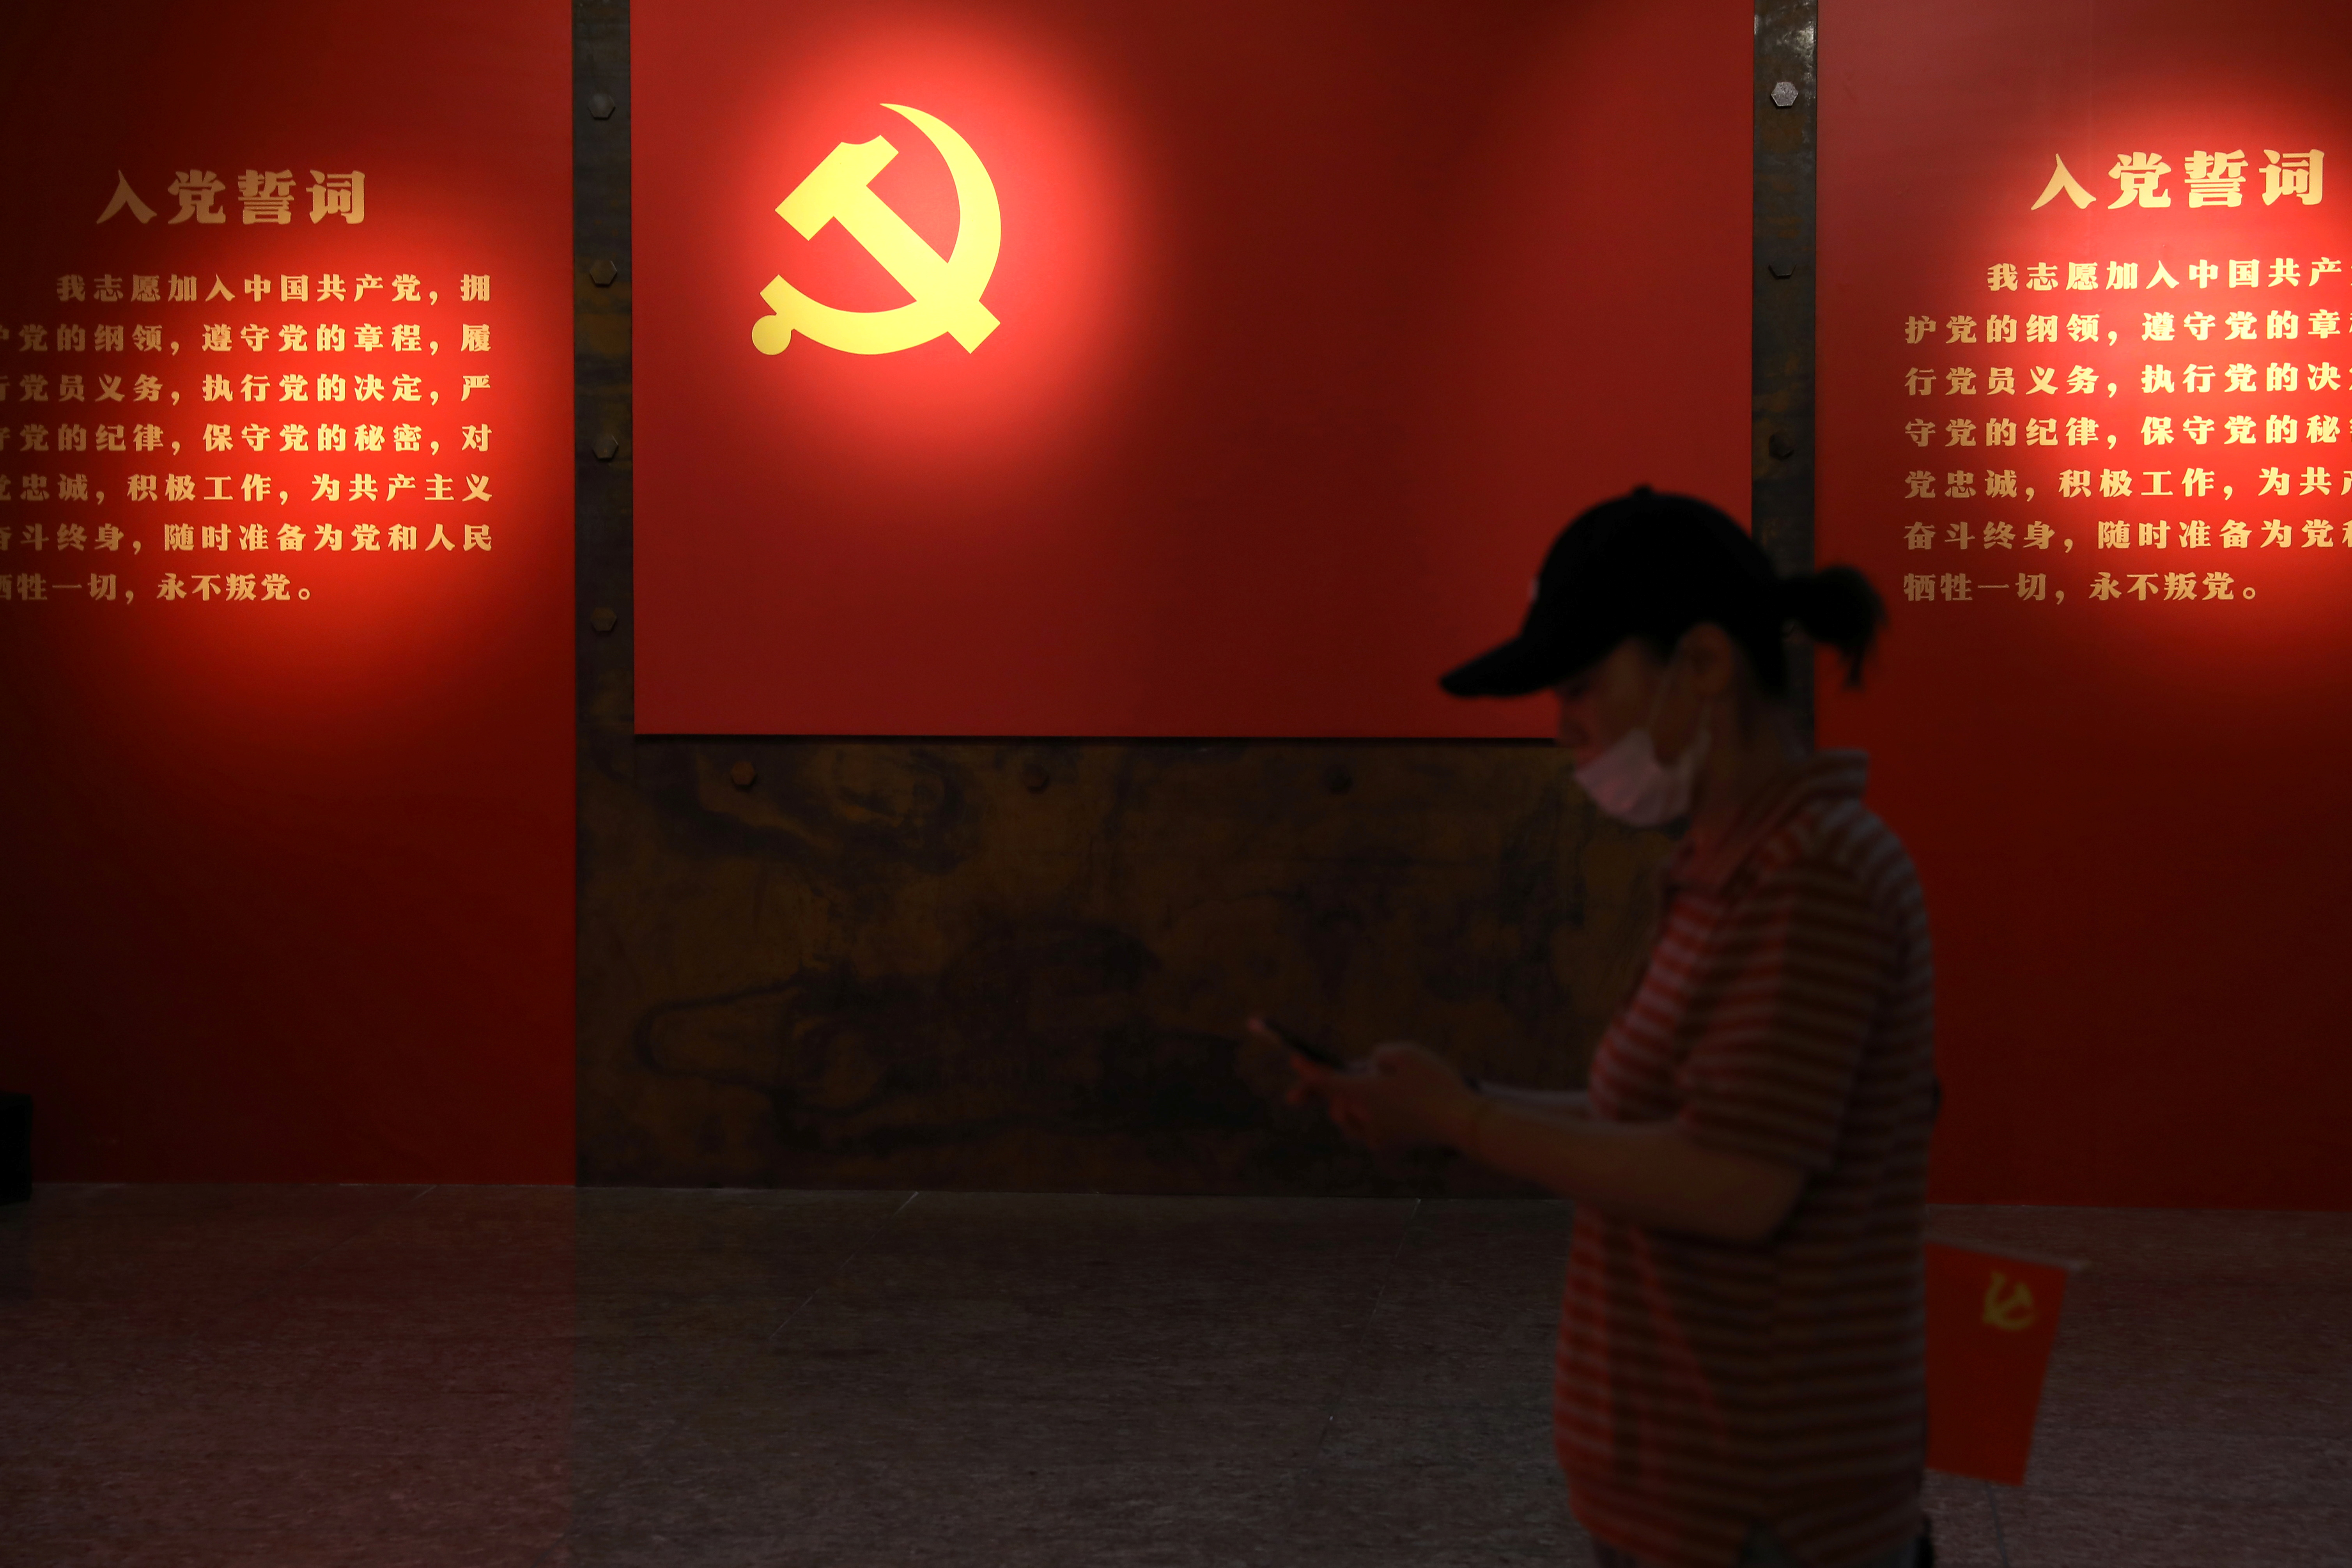 A visitor walks past a board with an emblem of the Communist Party of China at an exhibition marking the 100th anniversary of the founding of the Party, in Beijing, China June 22, 2021. Picture taken June 22, 2021. REUTERS/Tingshu Wang